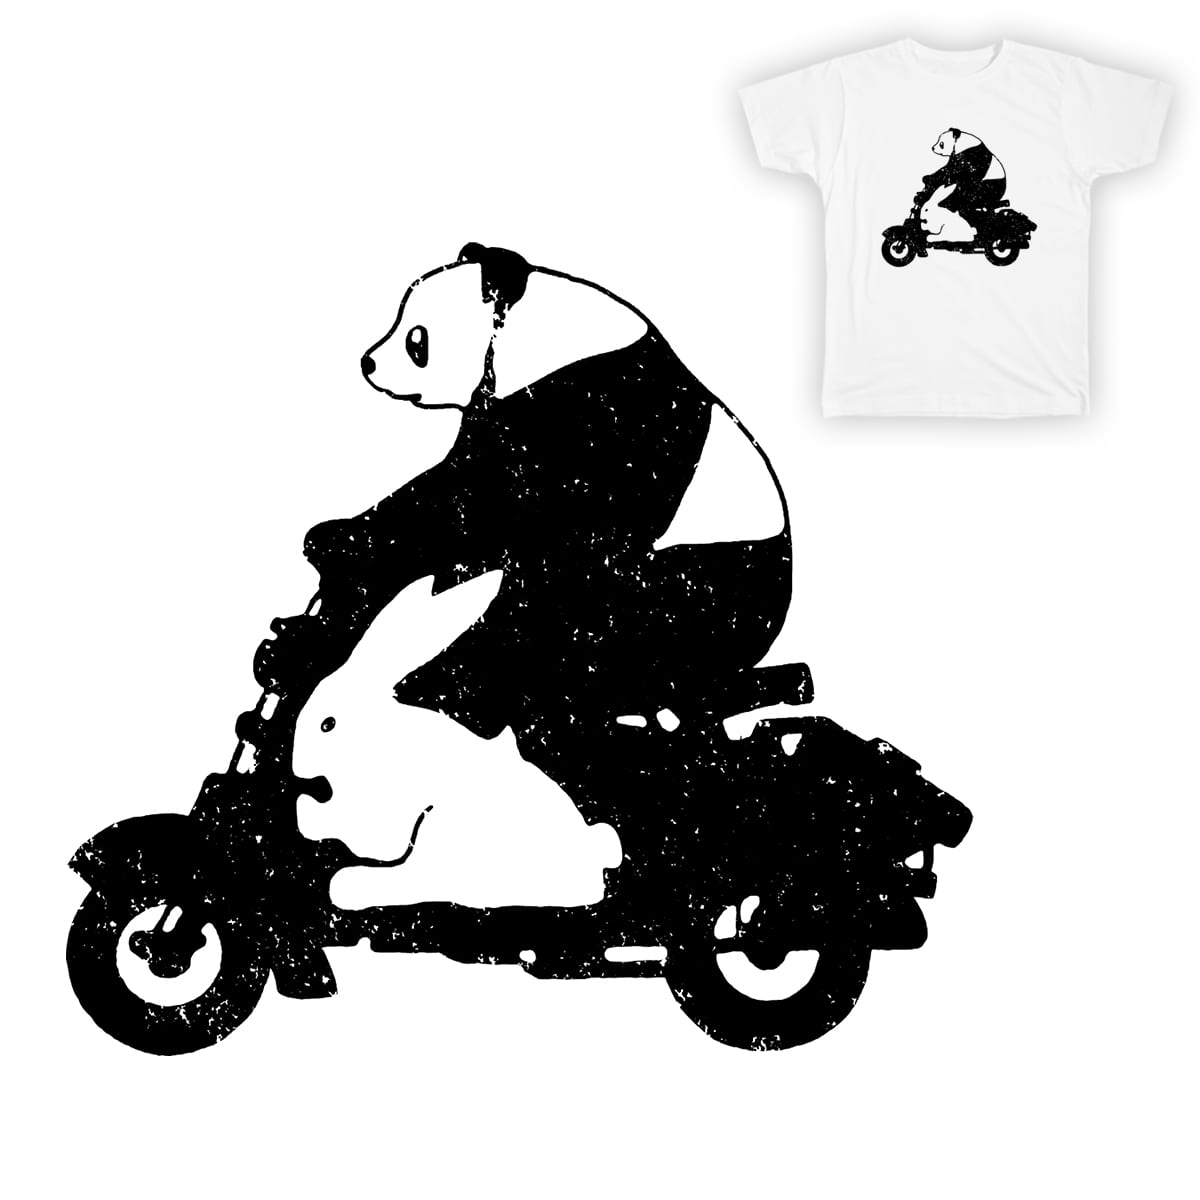 TWO GO RIDING by NARNIAZ on Threadless